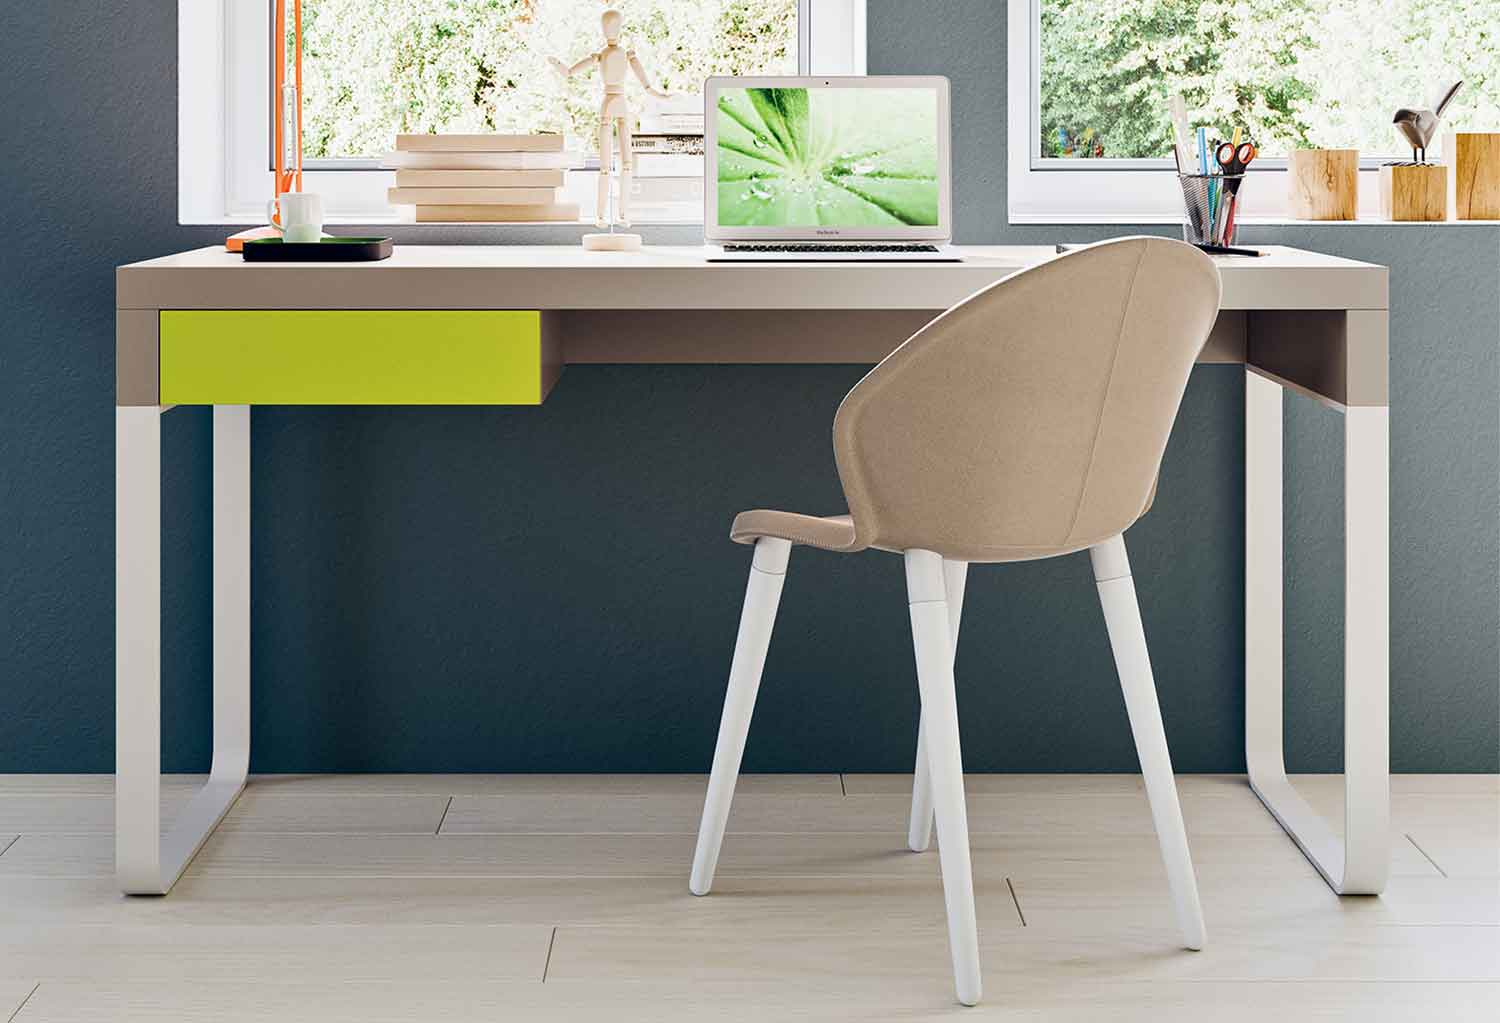 Kids' desk with one drawer and sleek sleigh legs